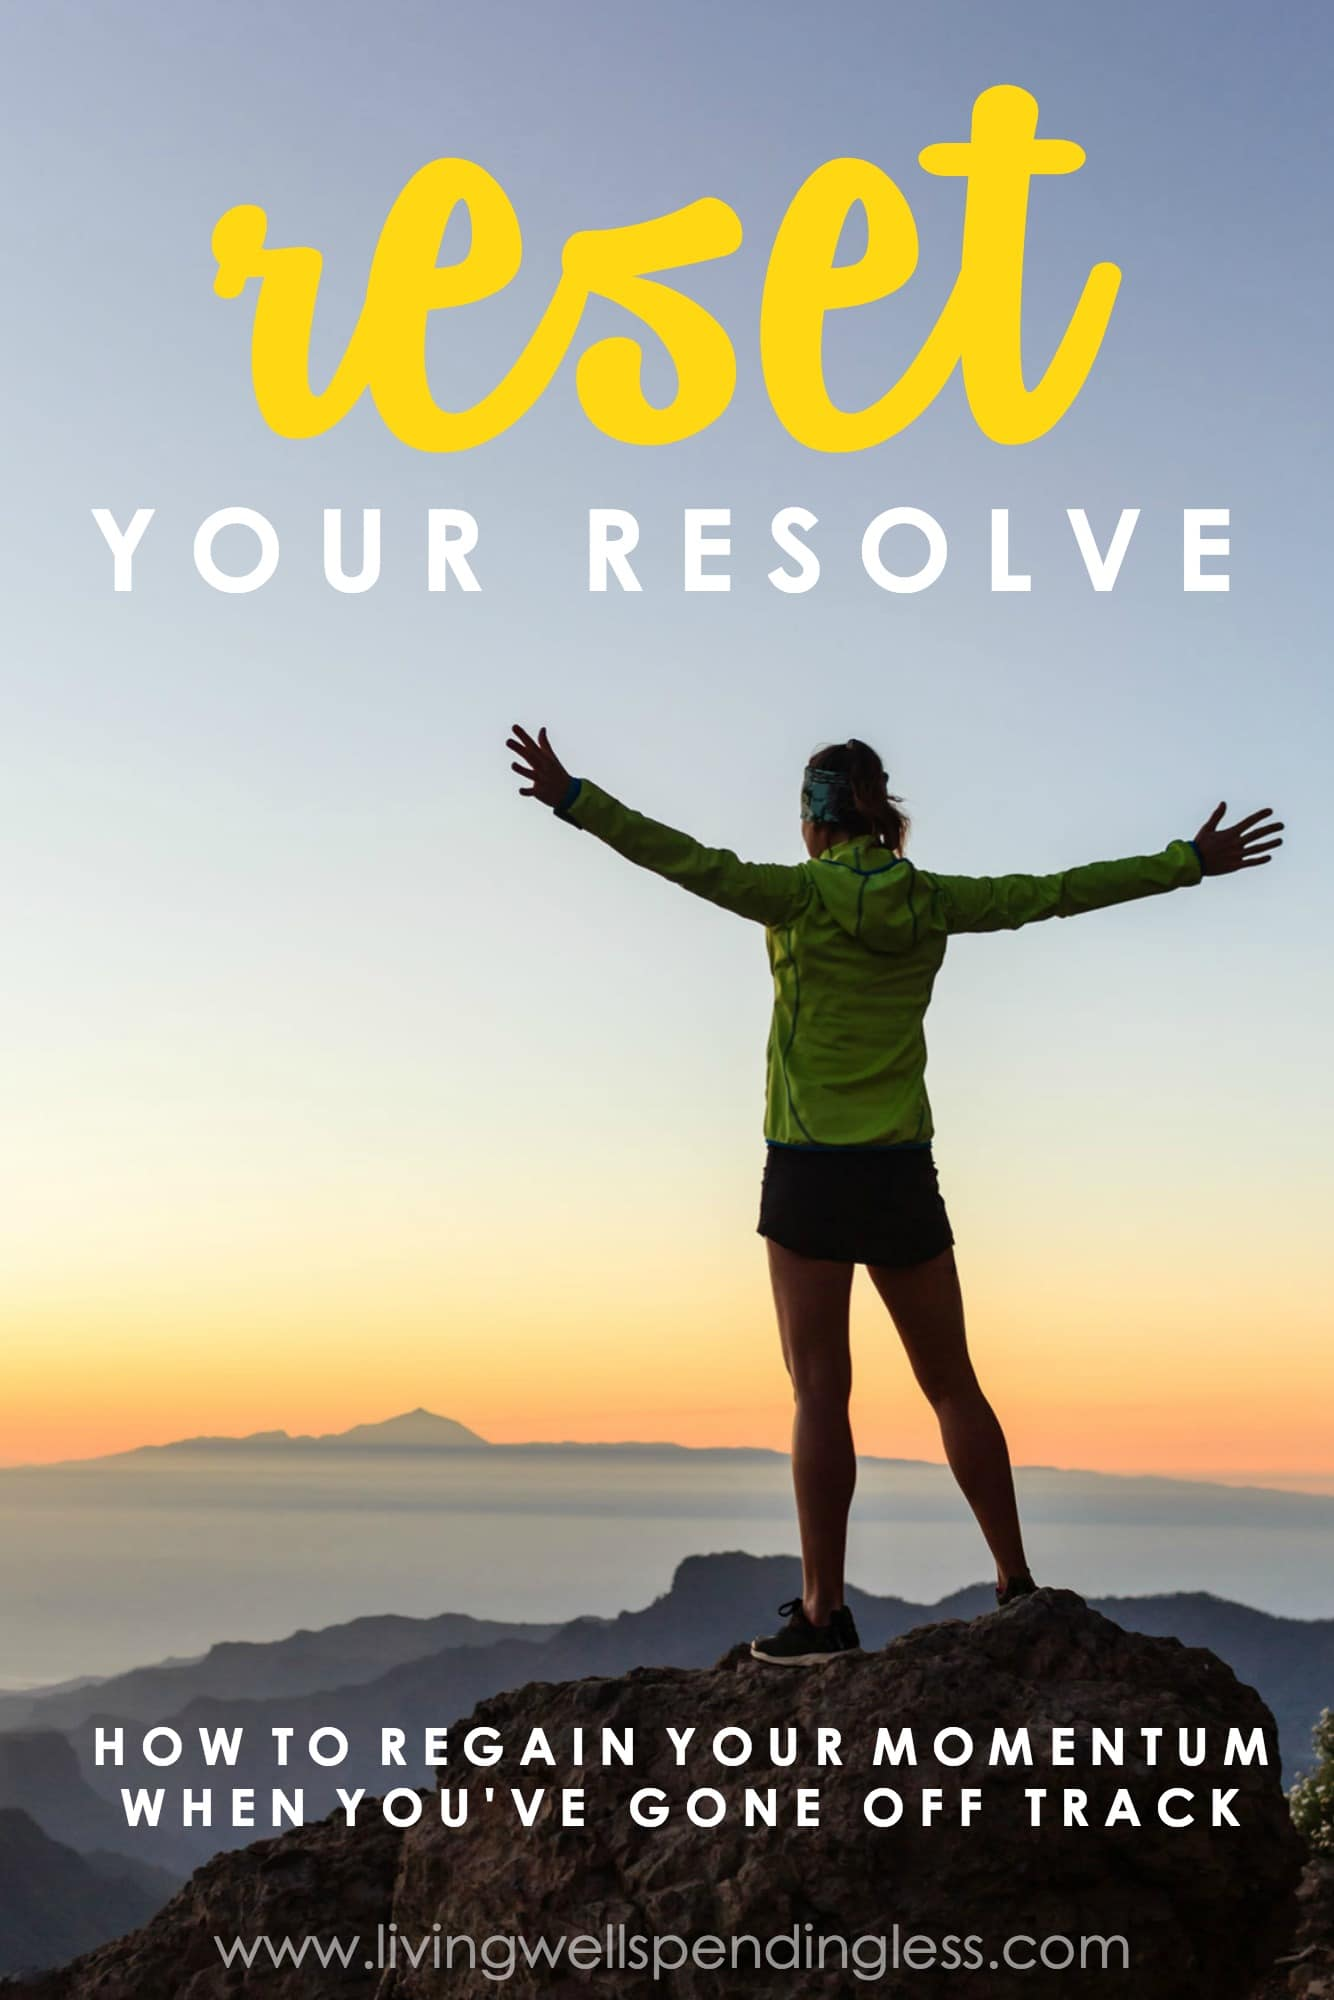 Reset your resolve and get back on track!